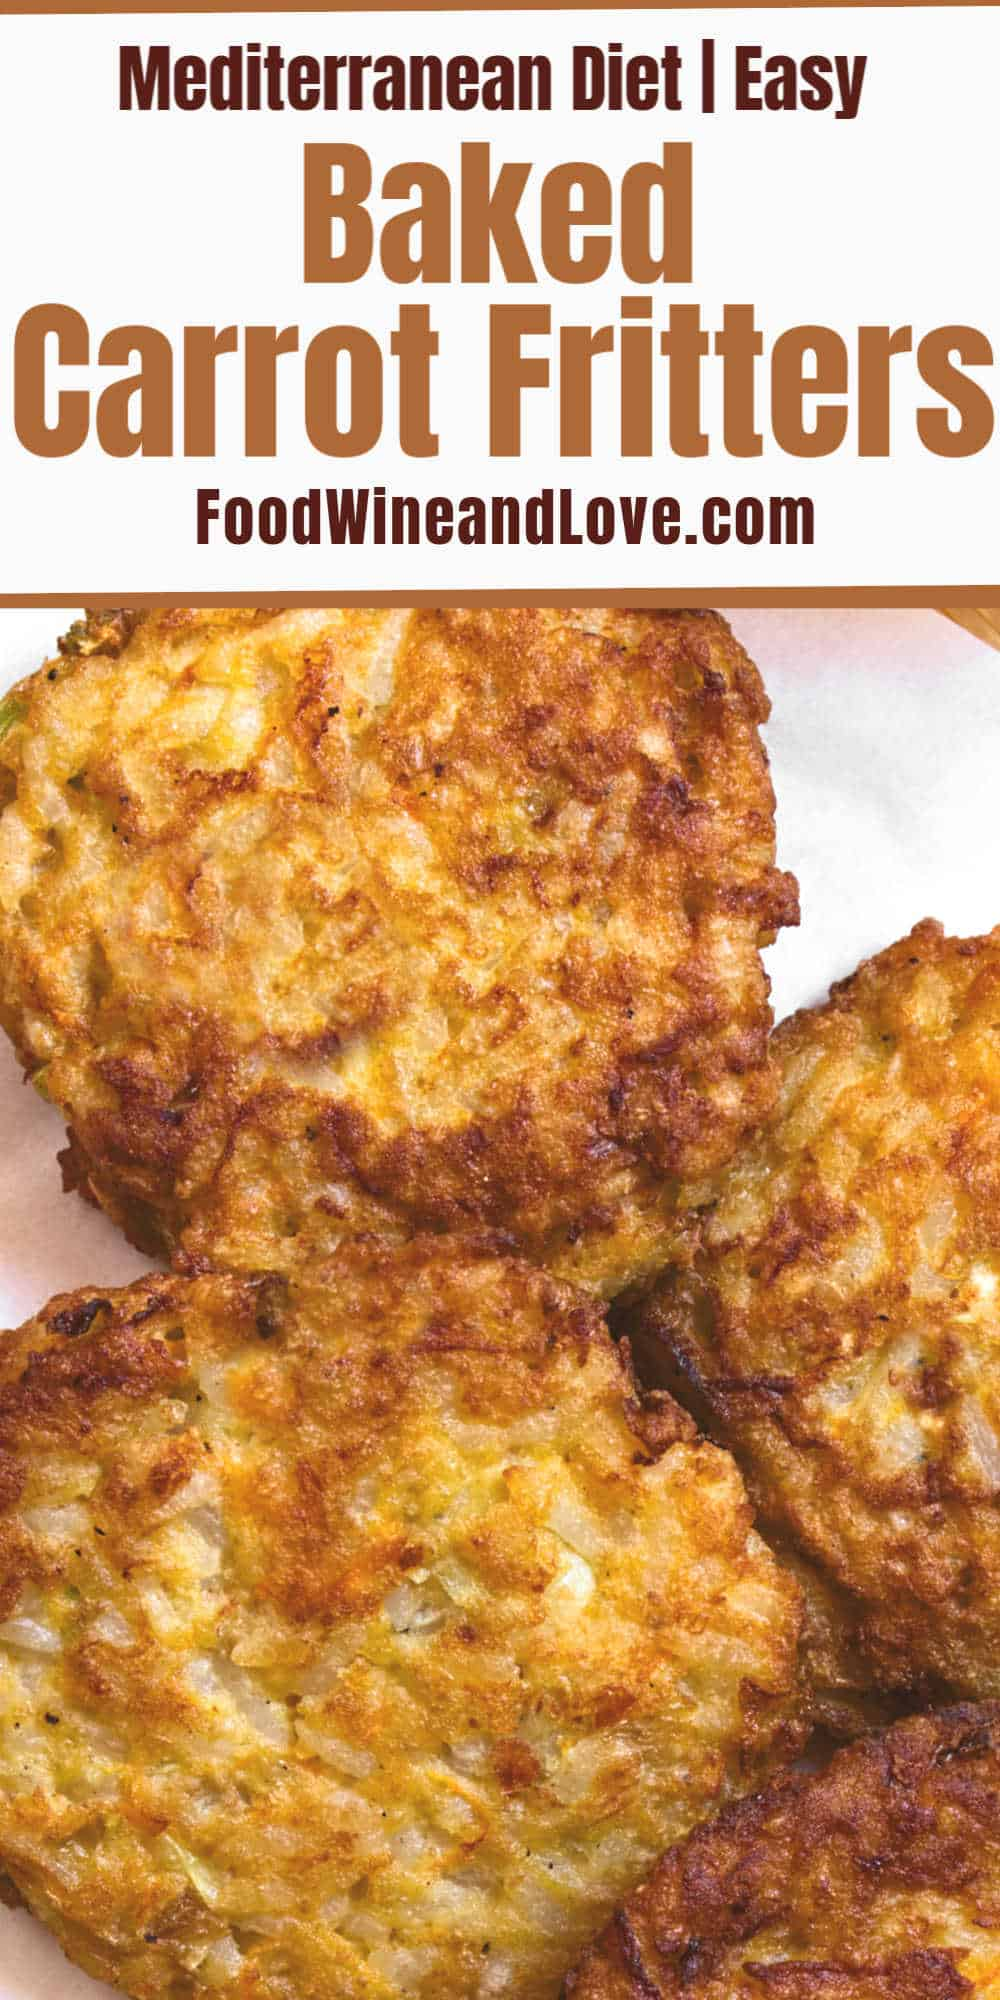 Baked Carrot Fritters